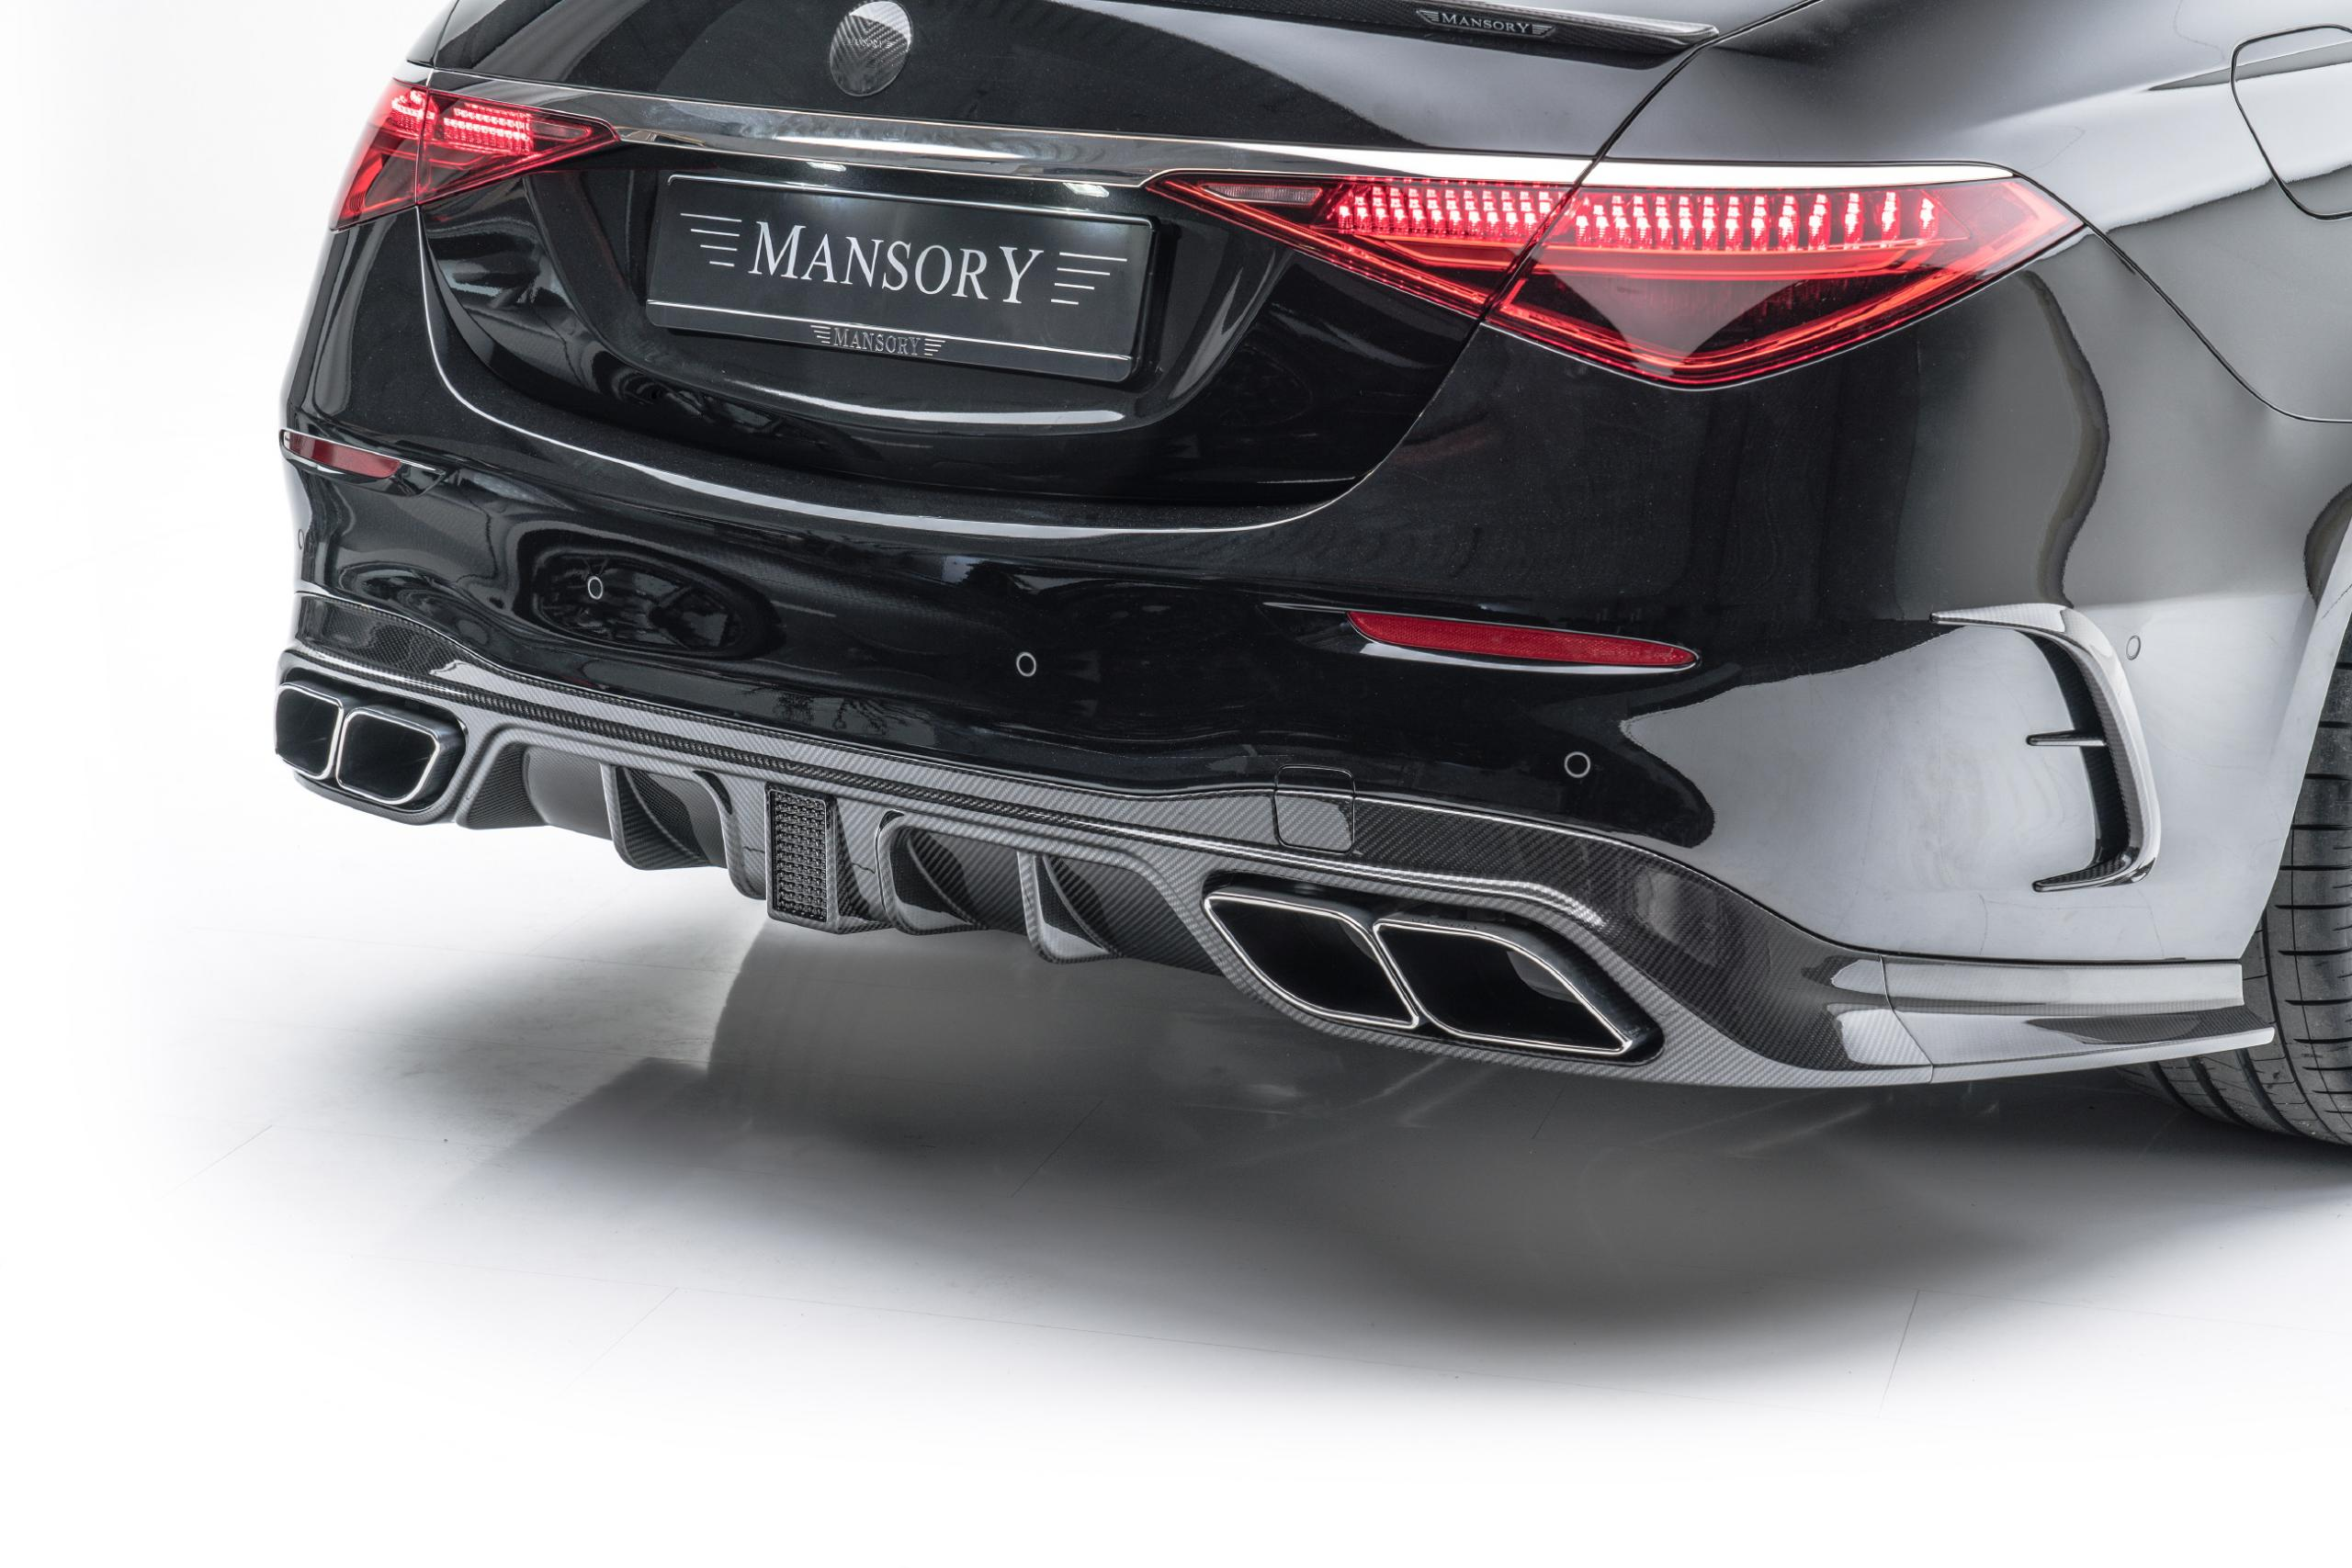 mansory w223 mercedes s class body kit carbon fiber rear diffuser with race brake light exhaust blinds tips 2021 2022 2023